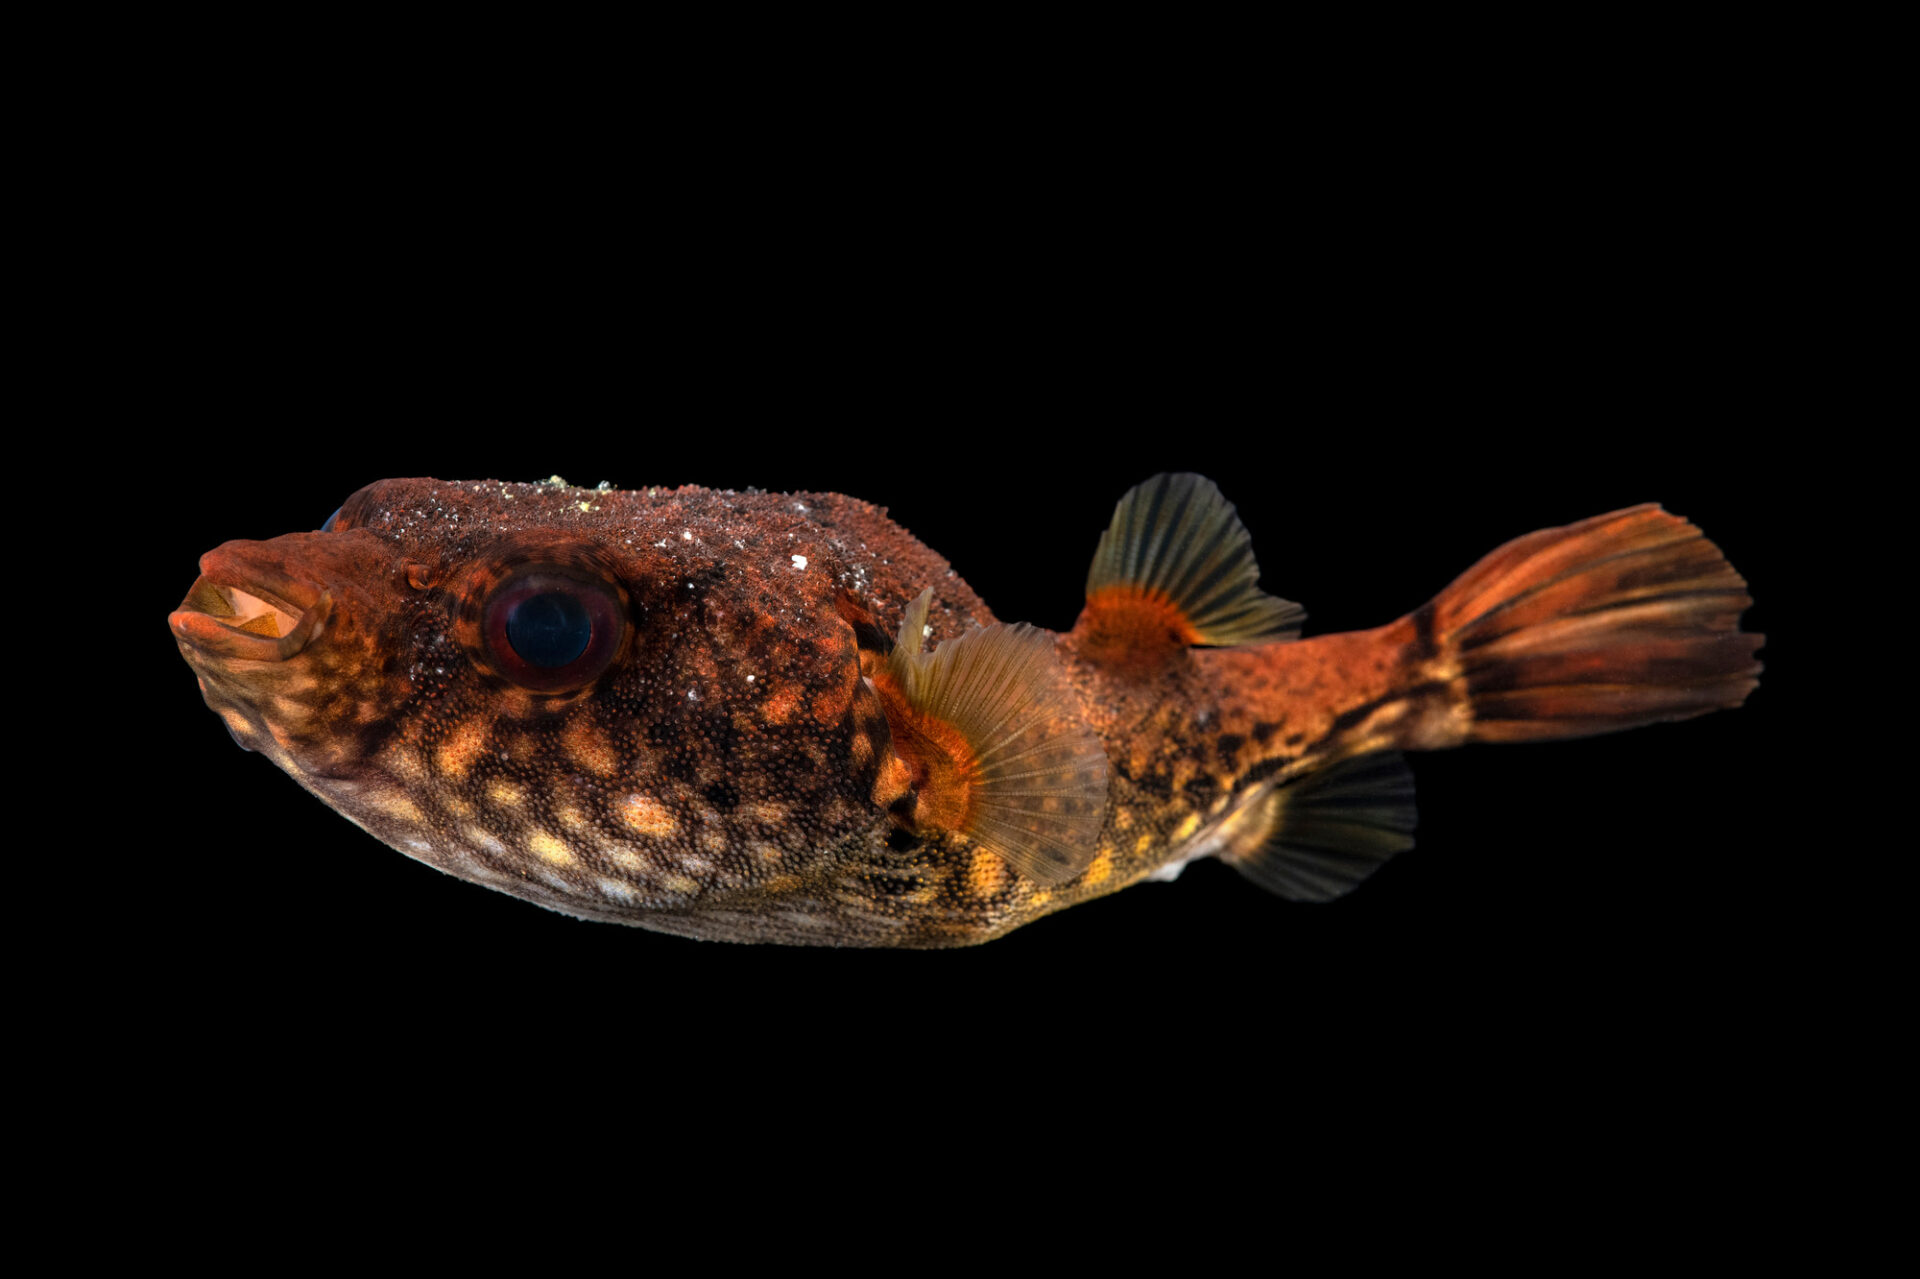 Photo: A freshwater pufferfish (Pao palembangensis) from a private collection in St. Augustine, Florida.